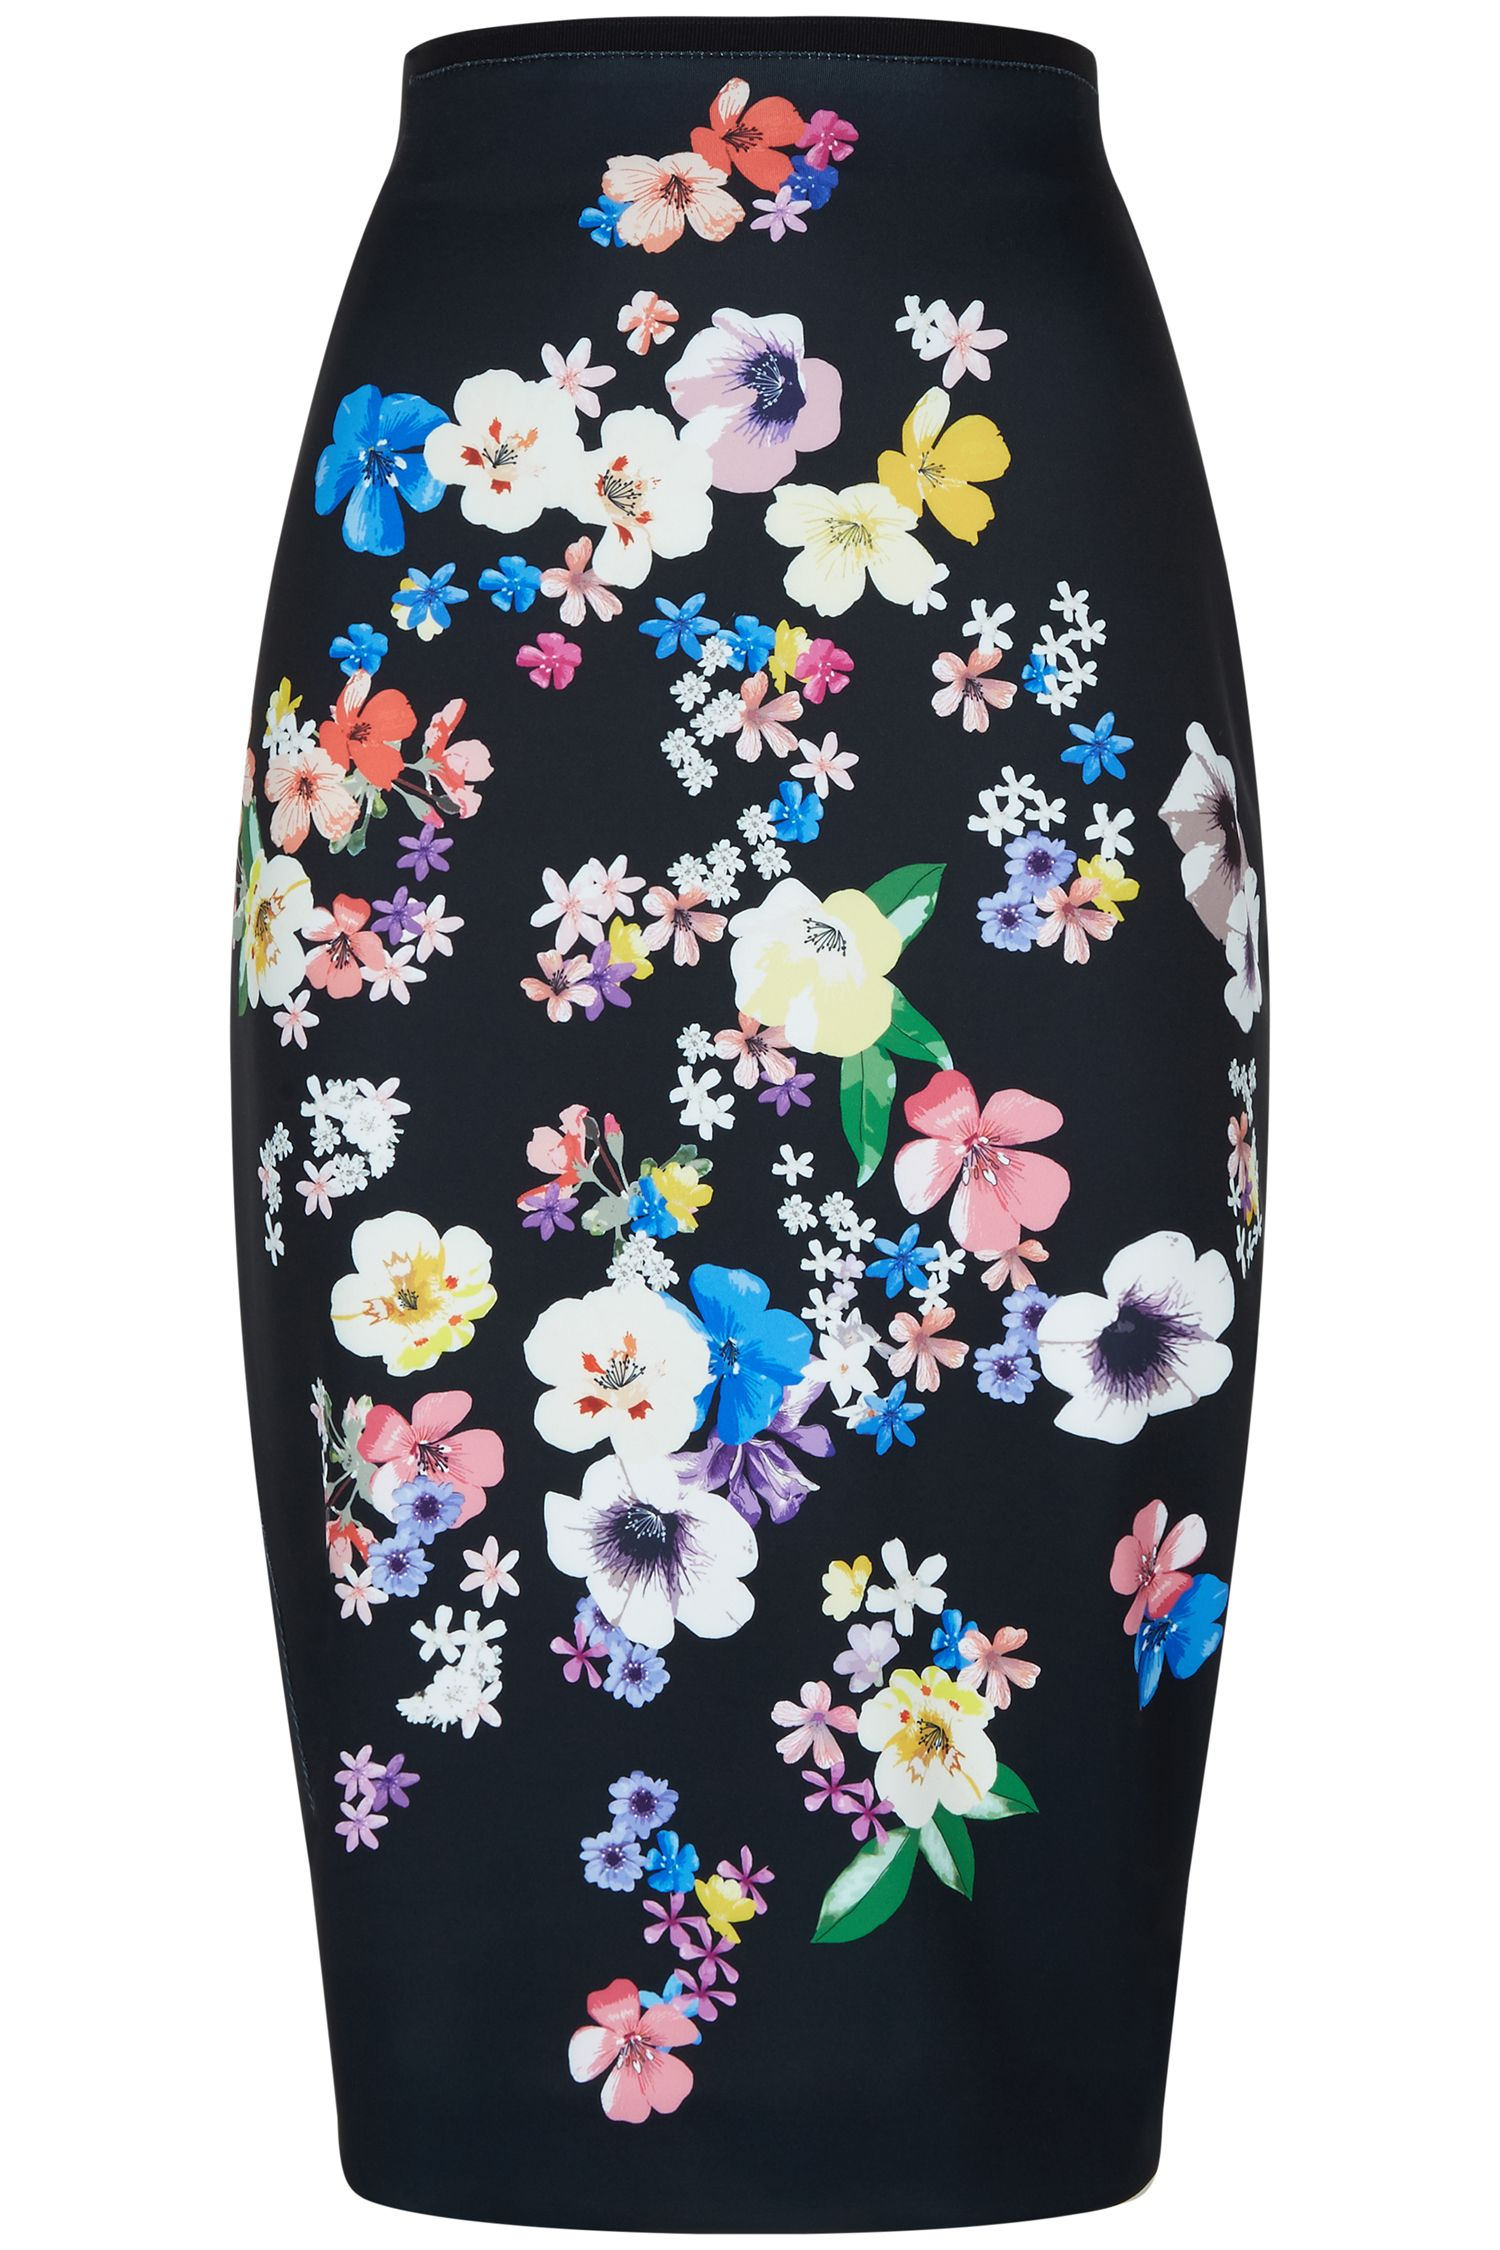 Damsel in a Dress Aromatic Skirt, Multi-Coloured